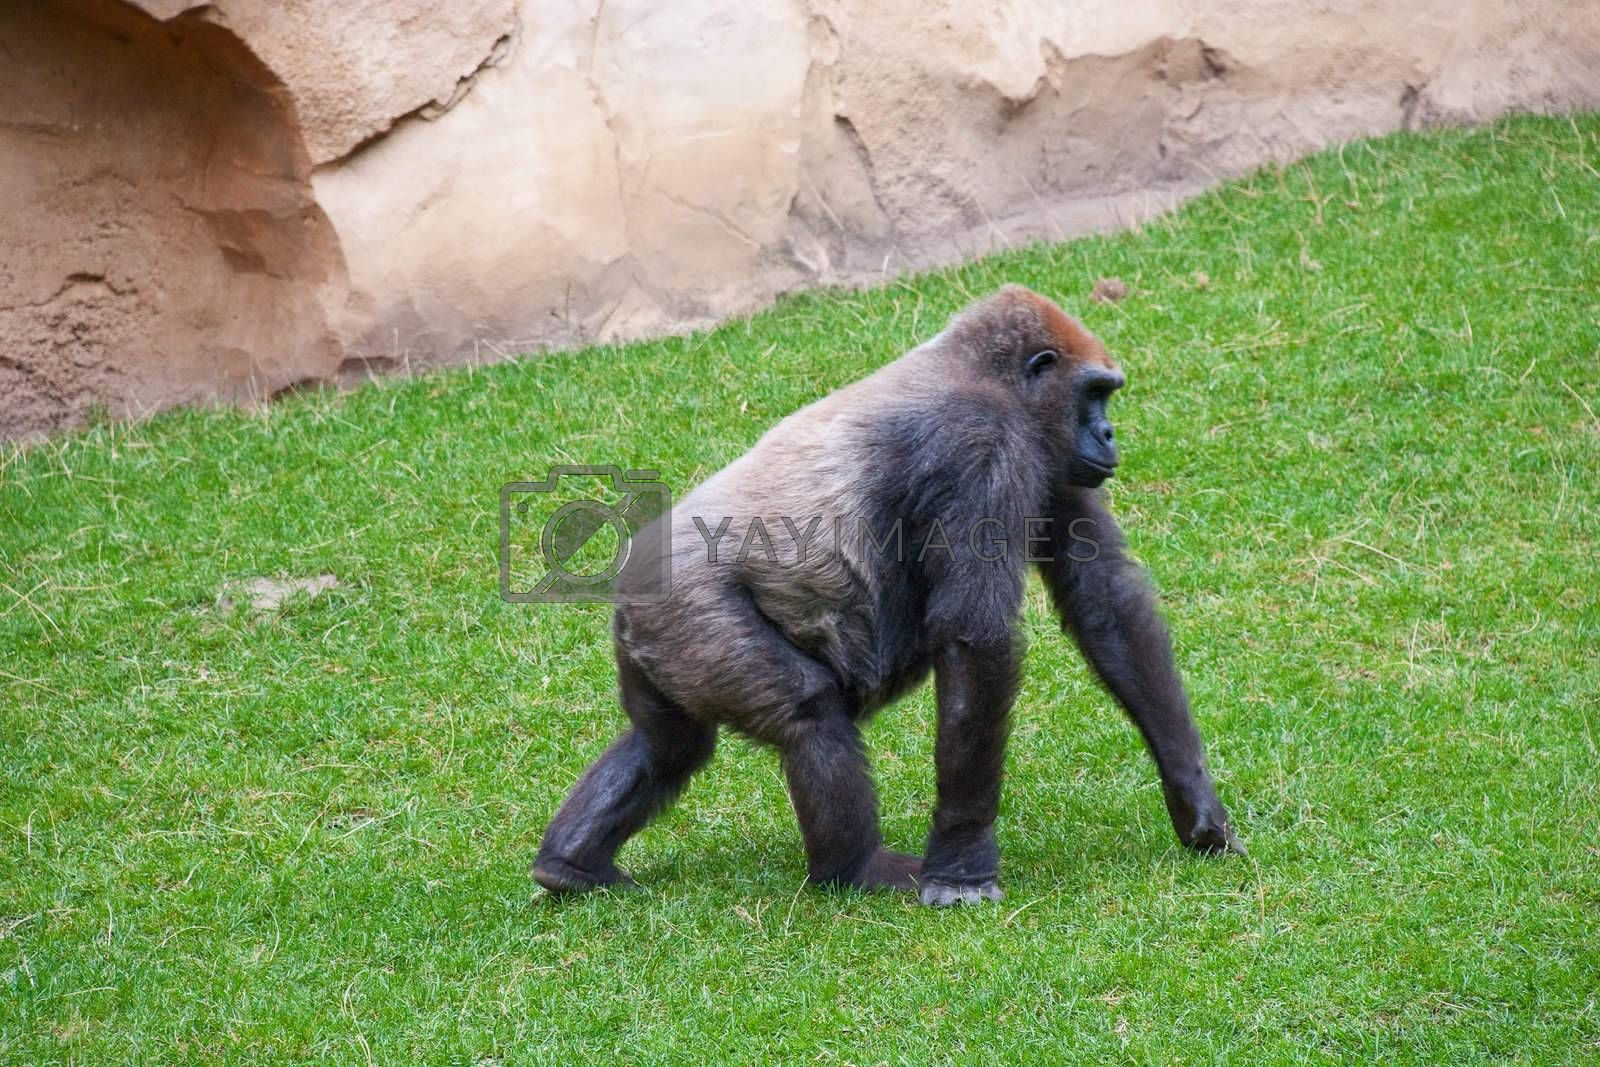 Male Silverback Gorilla goes on the grass